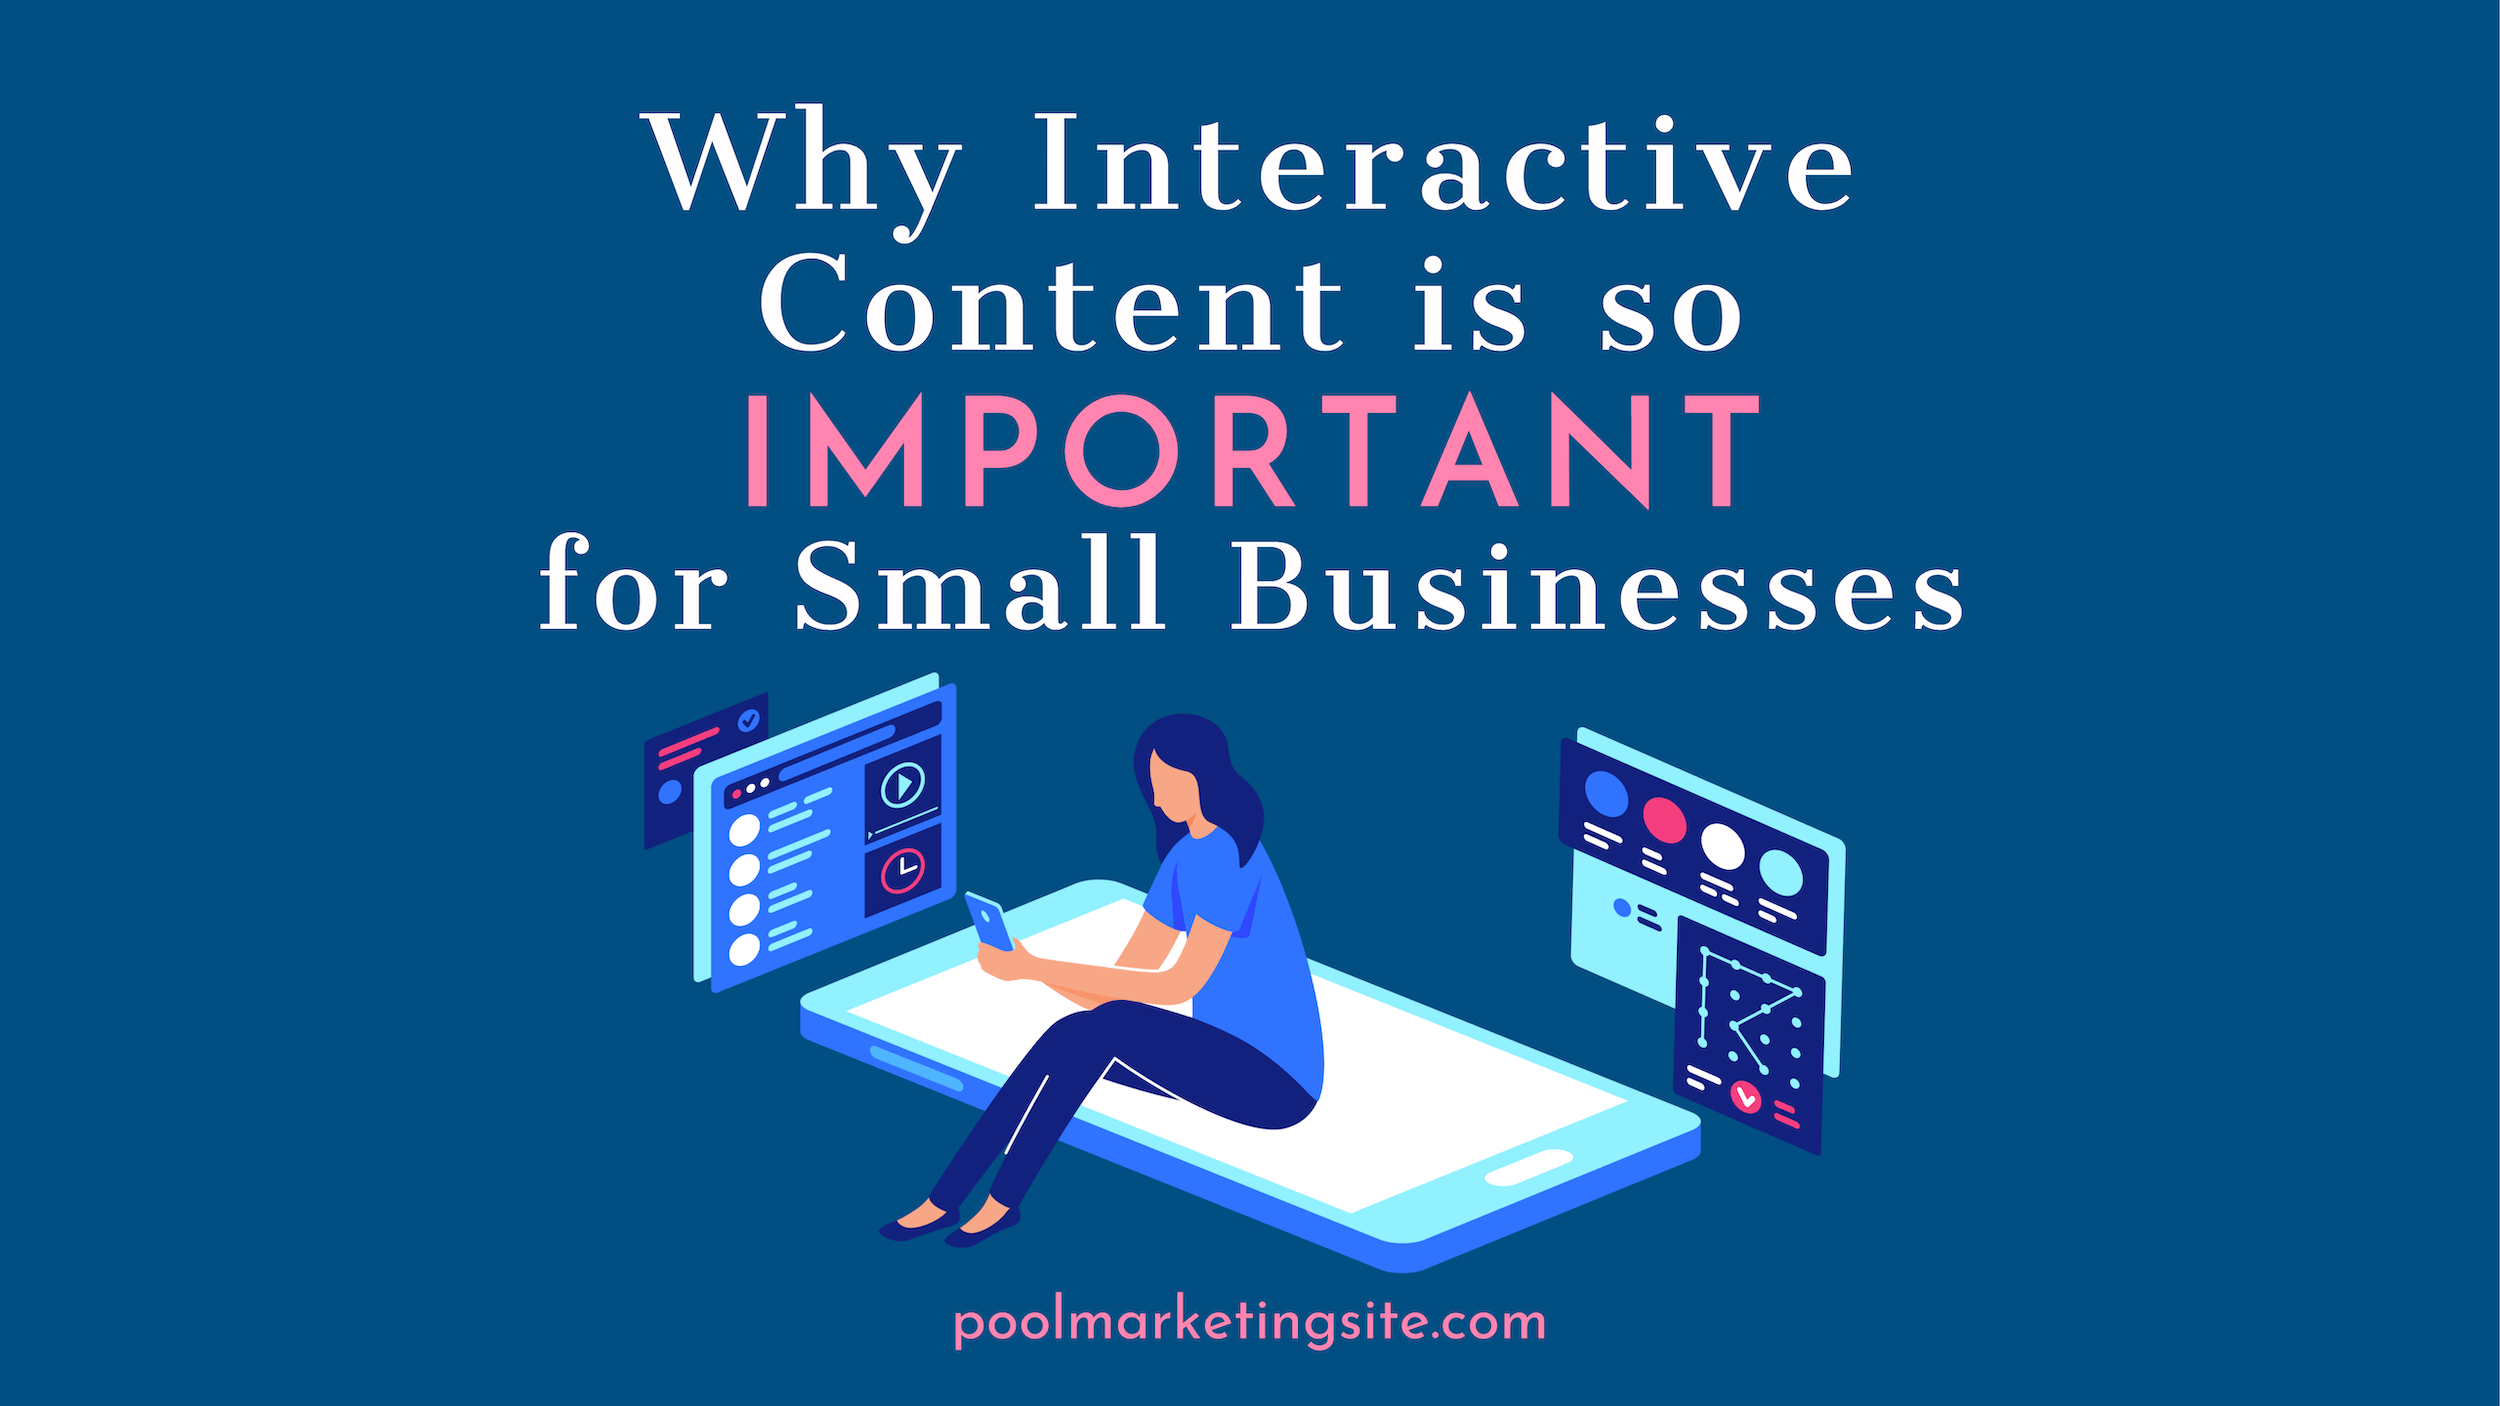 Why Interactive Content Is So Important for Small Businesses